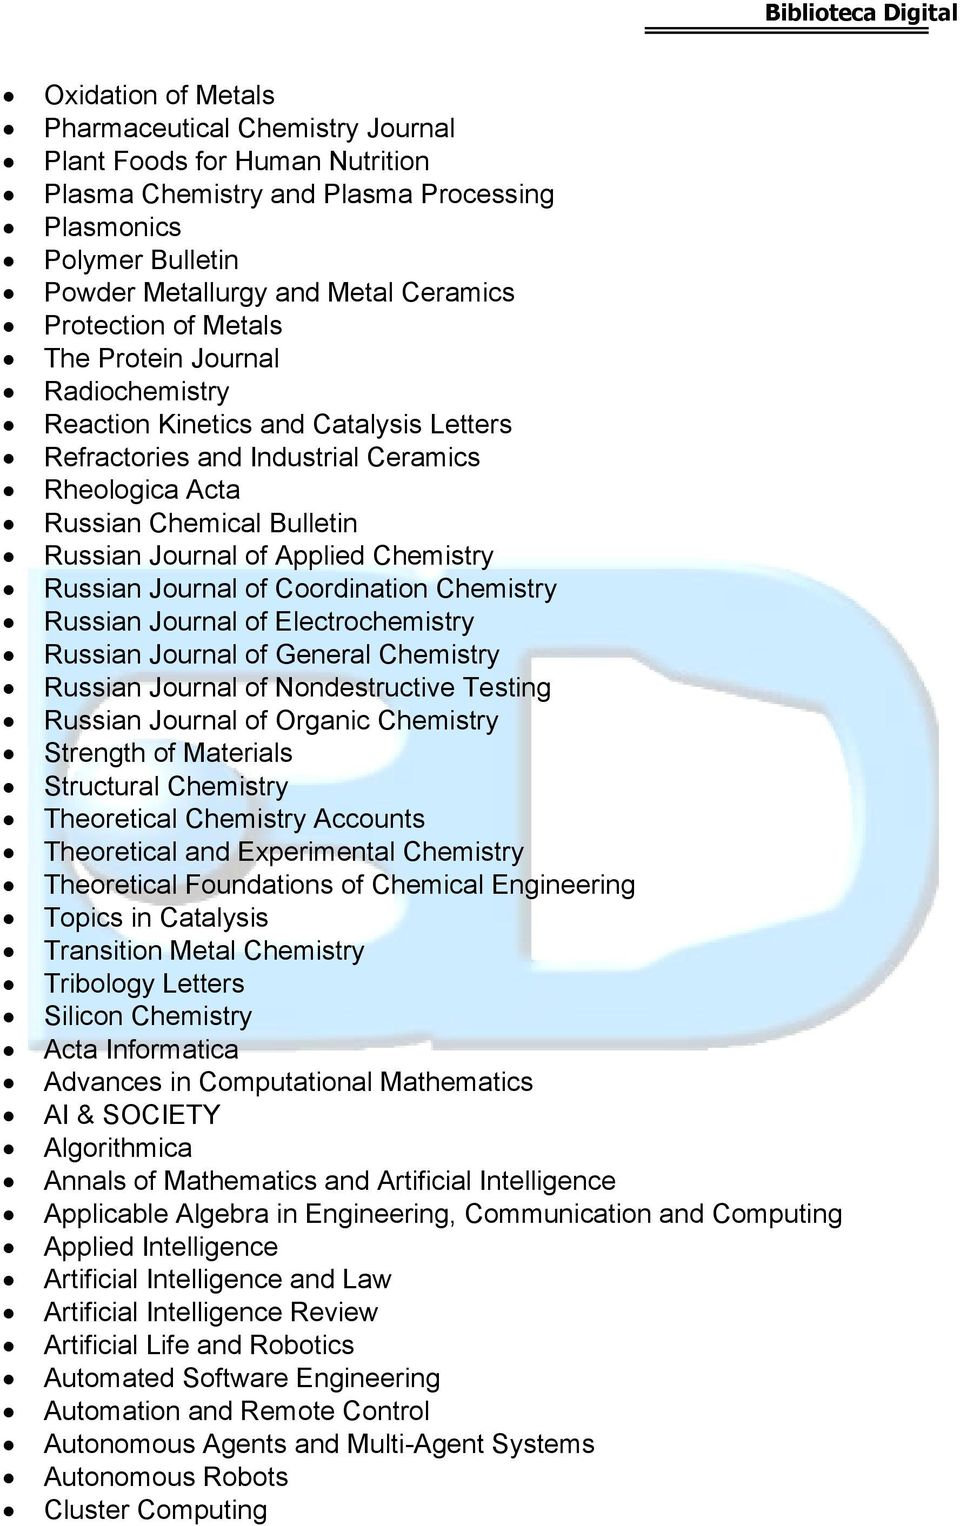 Chemistry Russian Journal of Coordination Chemistry Russian Journal of Electrochemistry Russian Journal of General Chemistry Russian Journal of Nondestructive Testing Russian Journal of Organic